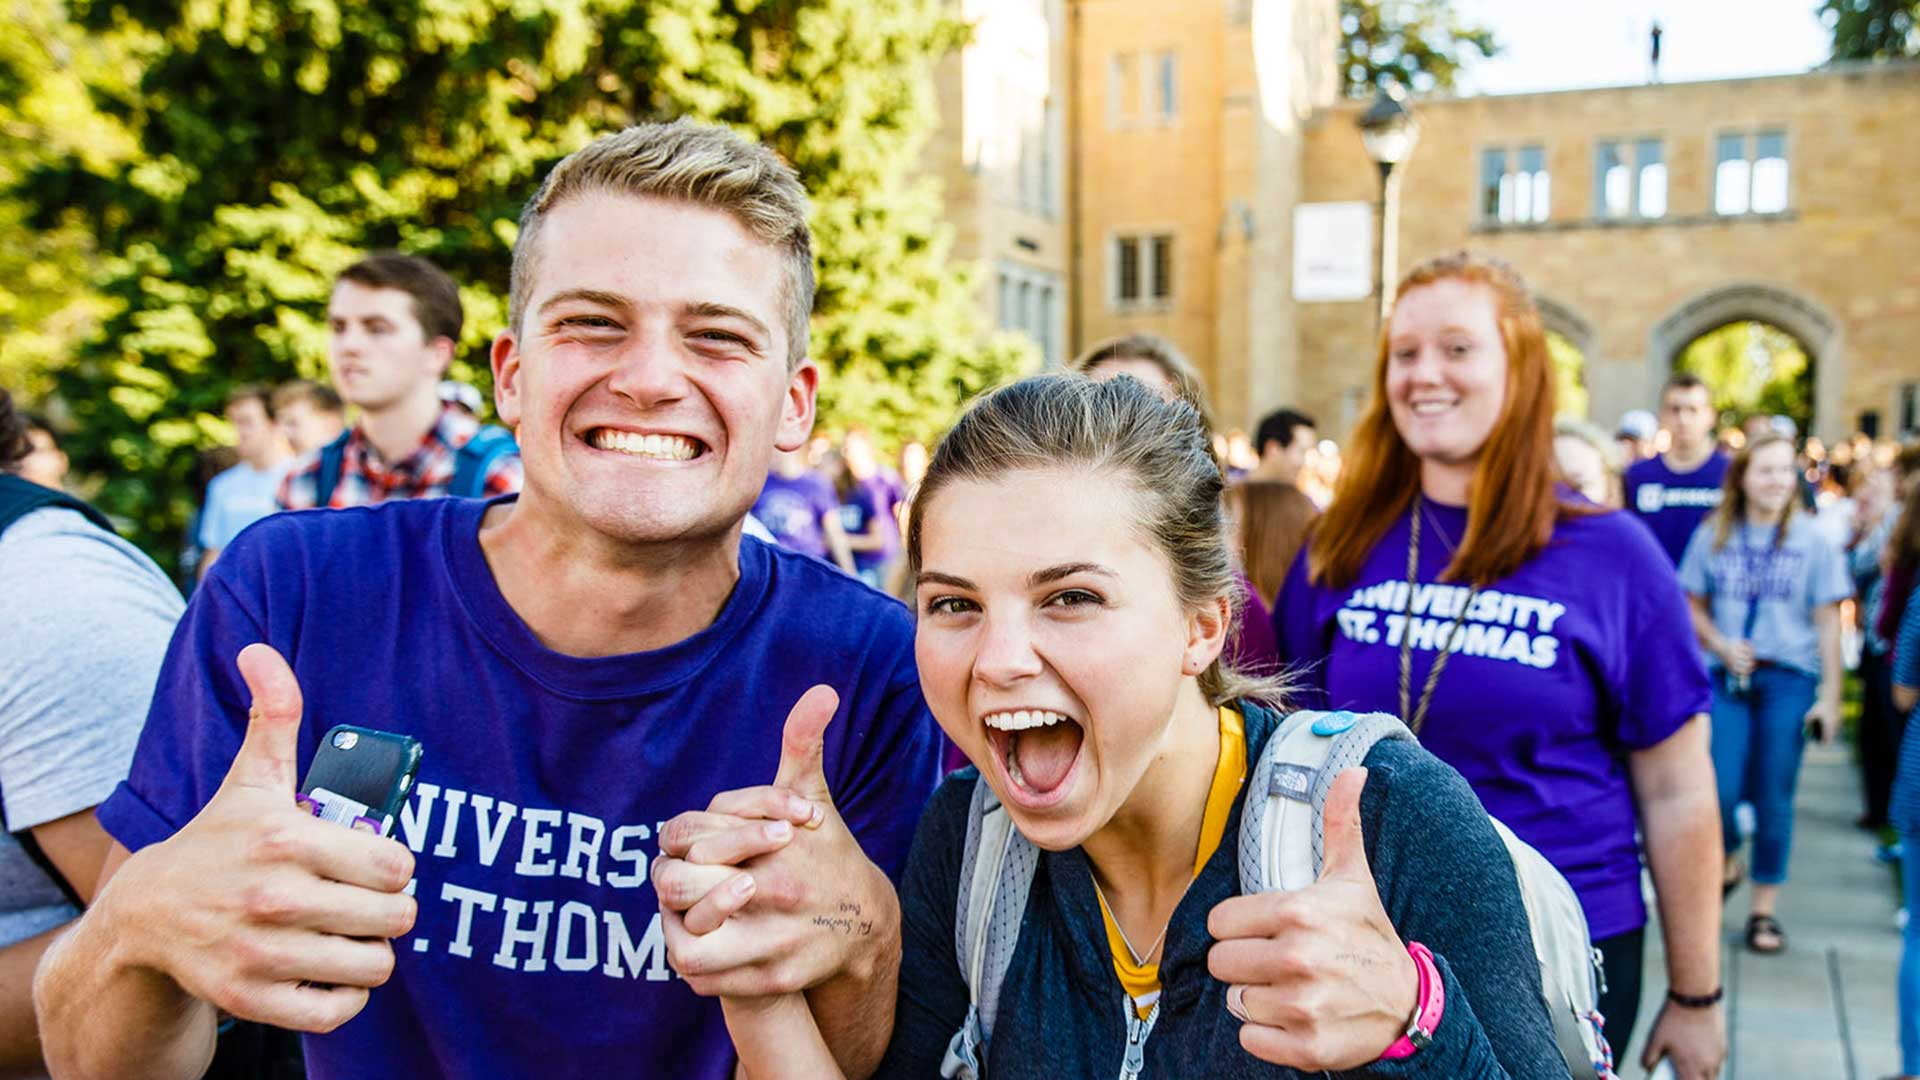 Students smile for the camera during the March Through the Arches in September.